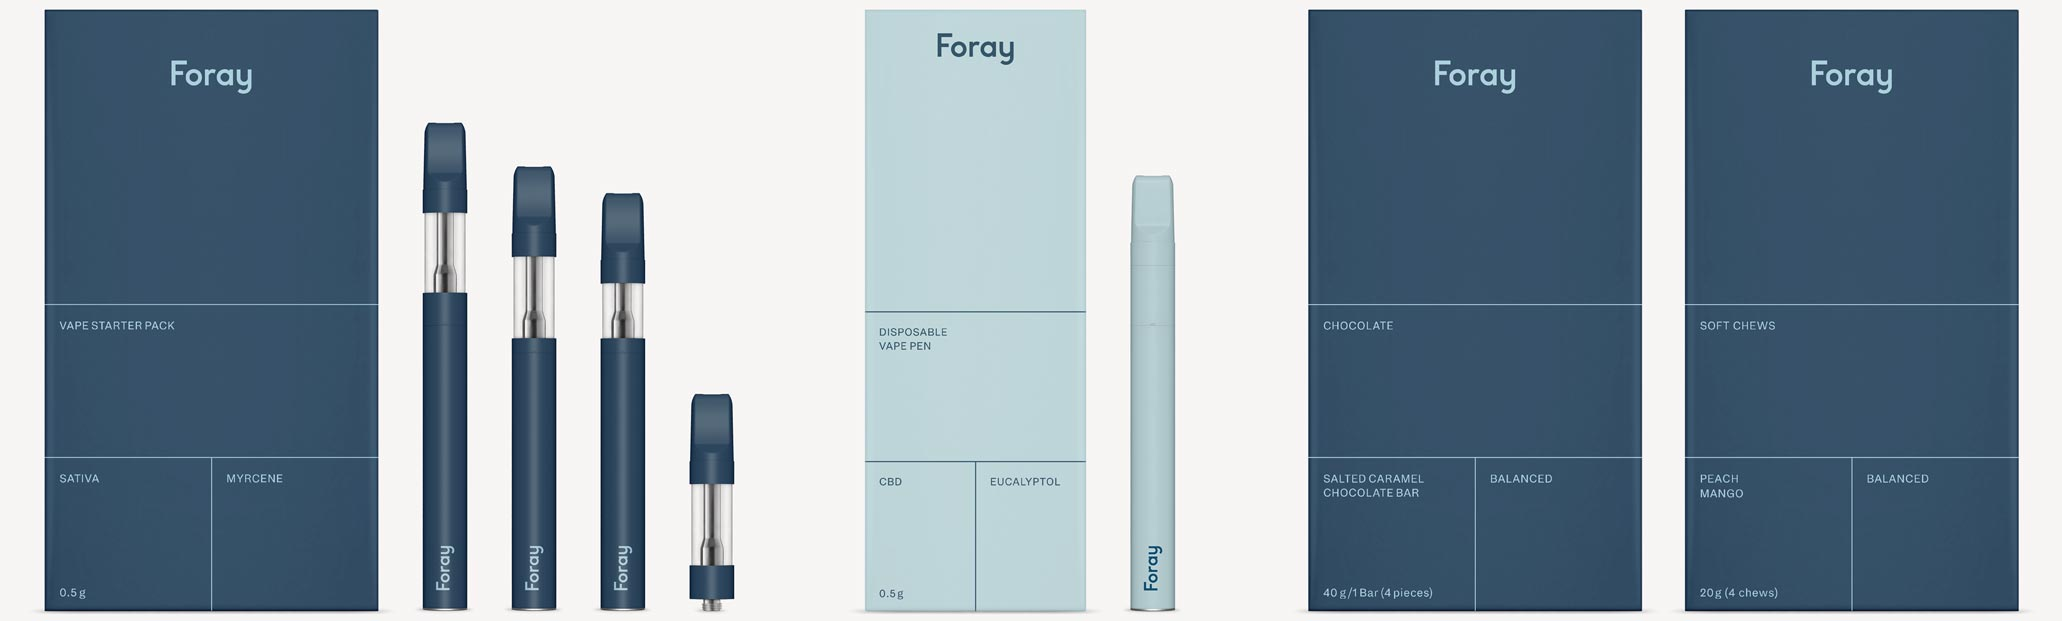 foray-product-lineup.161028a